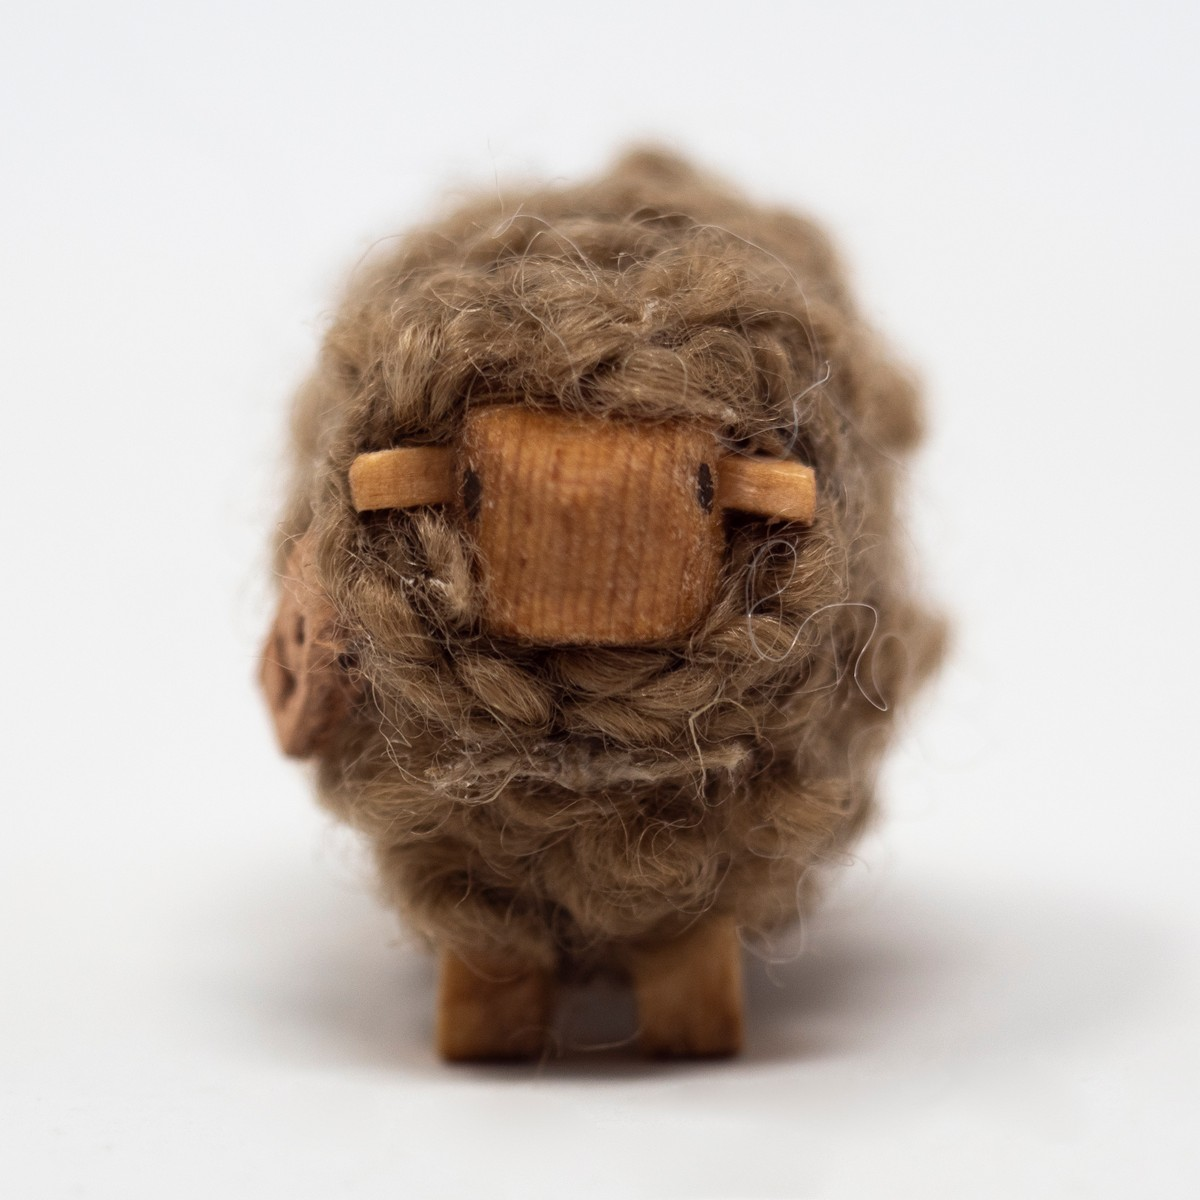 Photo of Medium Merino Sheep Figurine